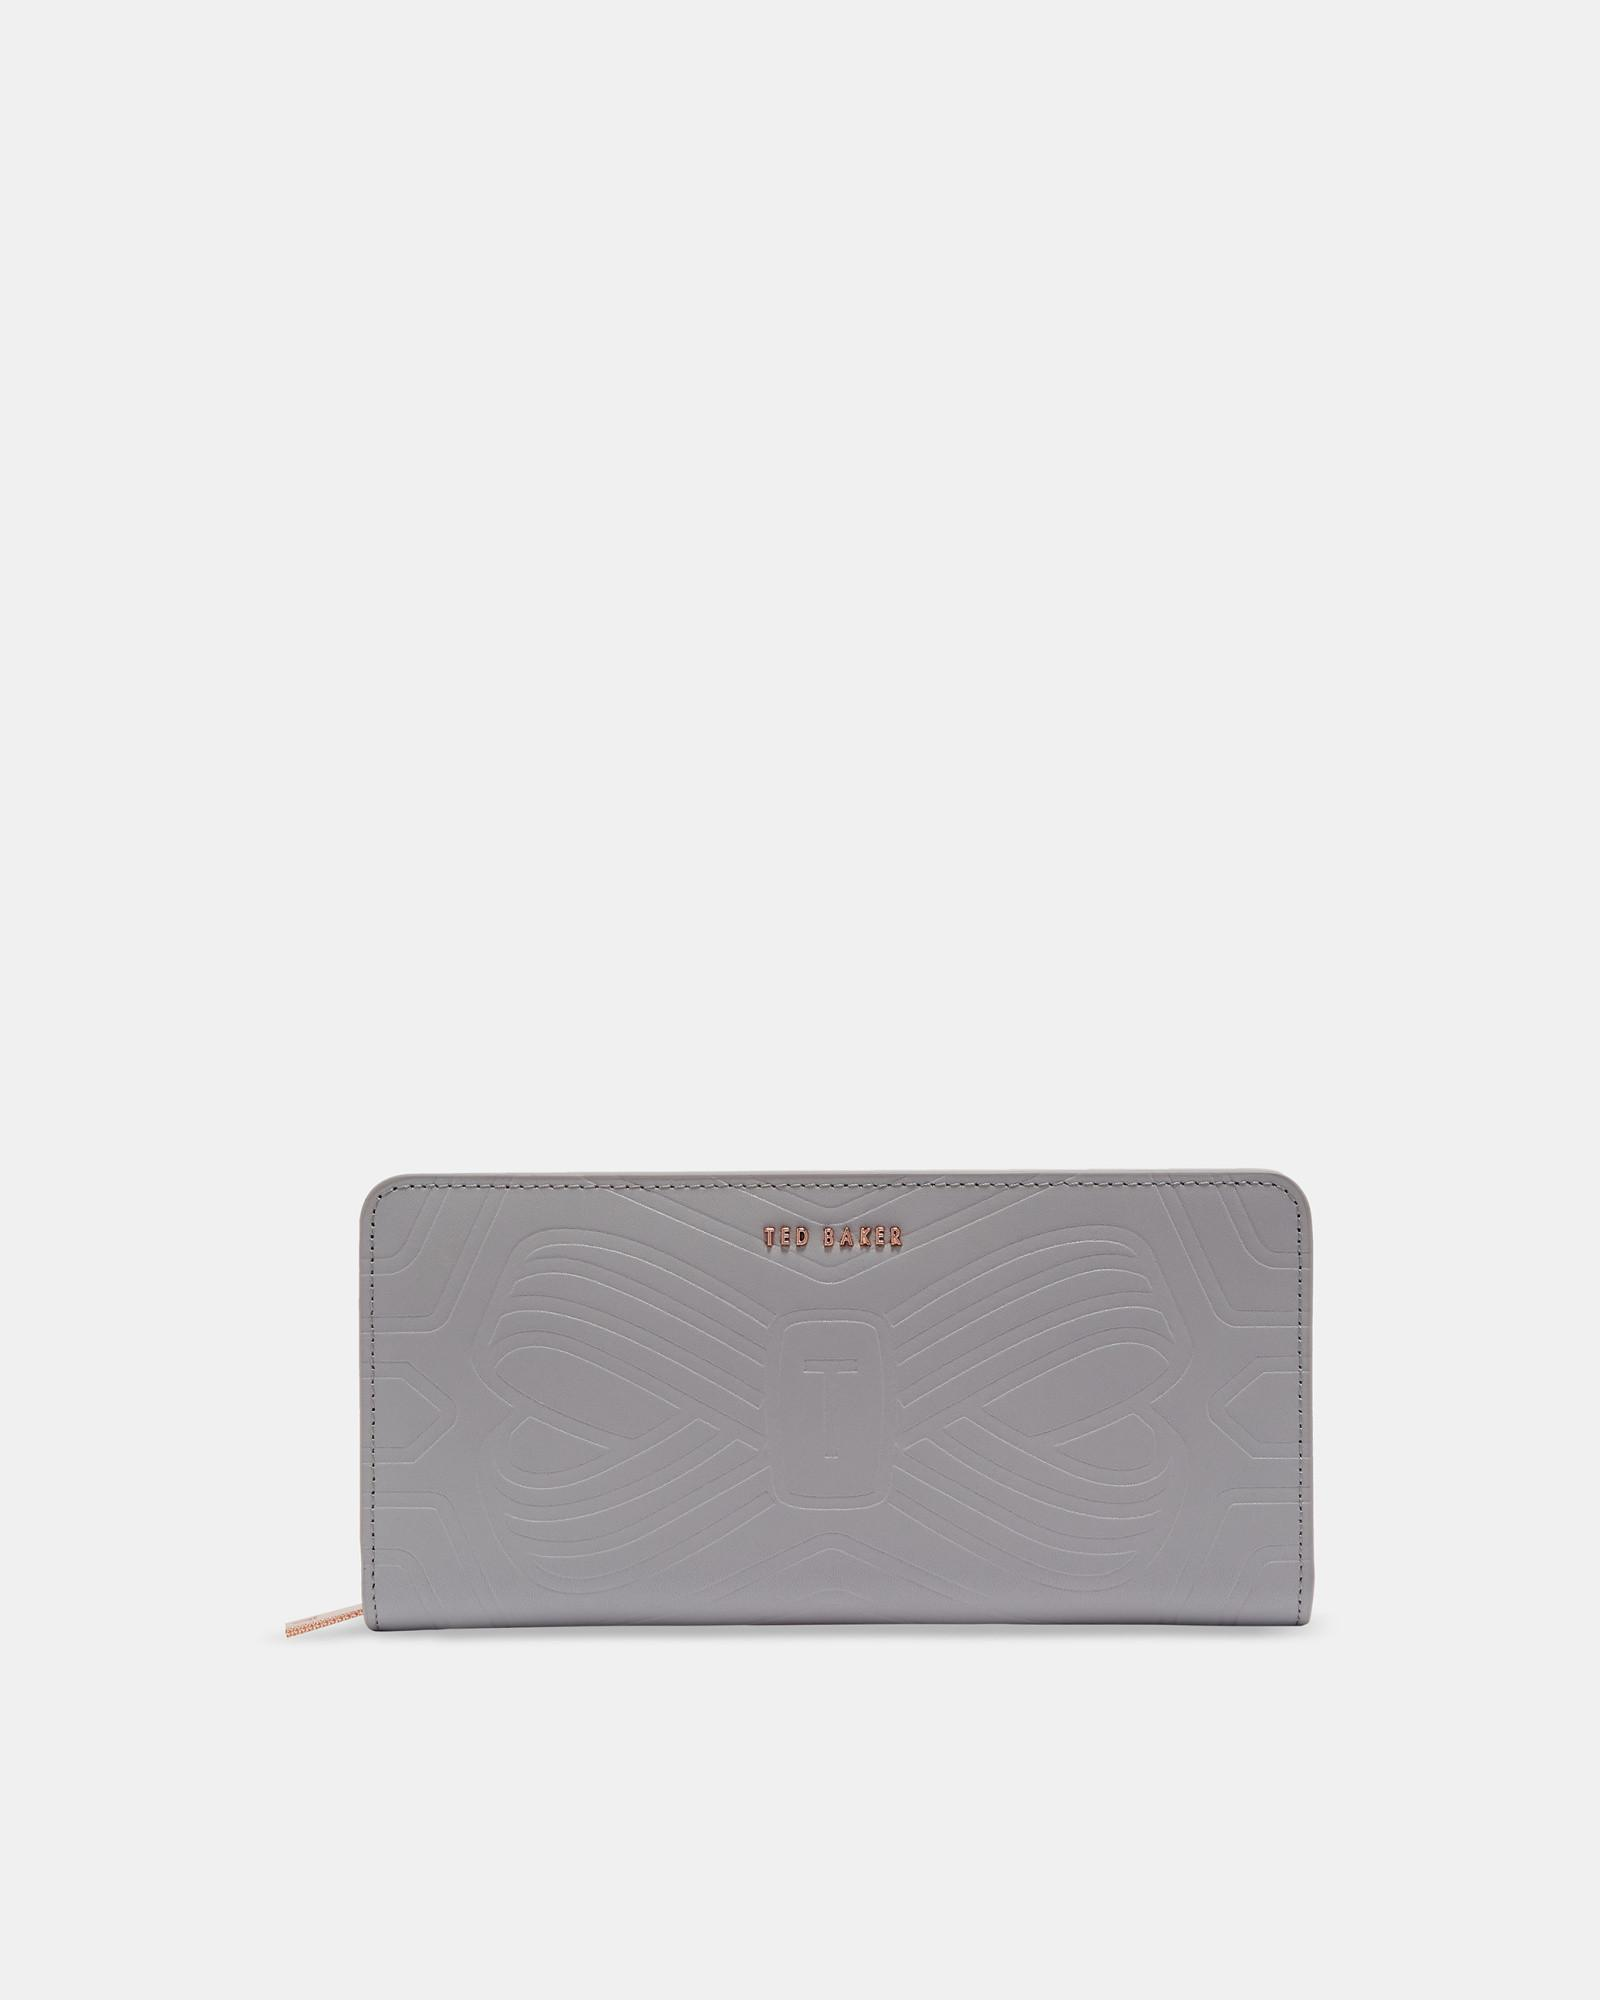 56700c9e2838 Ted Baker - Gray Embossed Bow Leather Matinee Purse - Lyst. View fullscreen